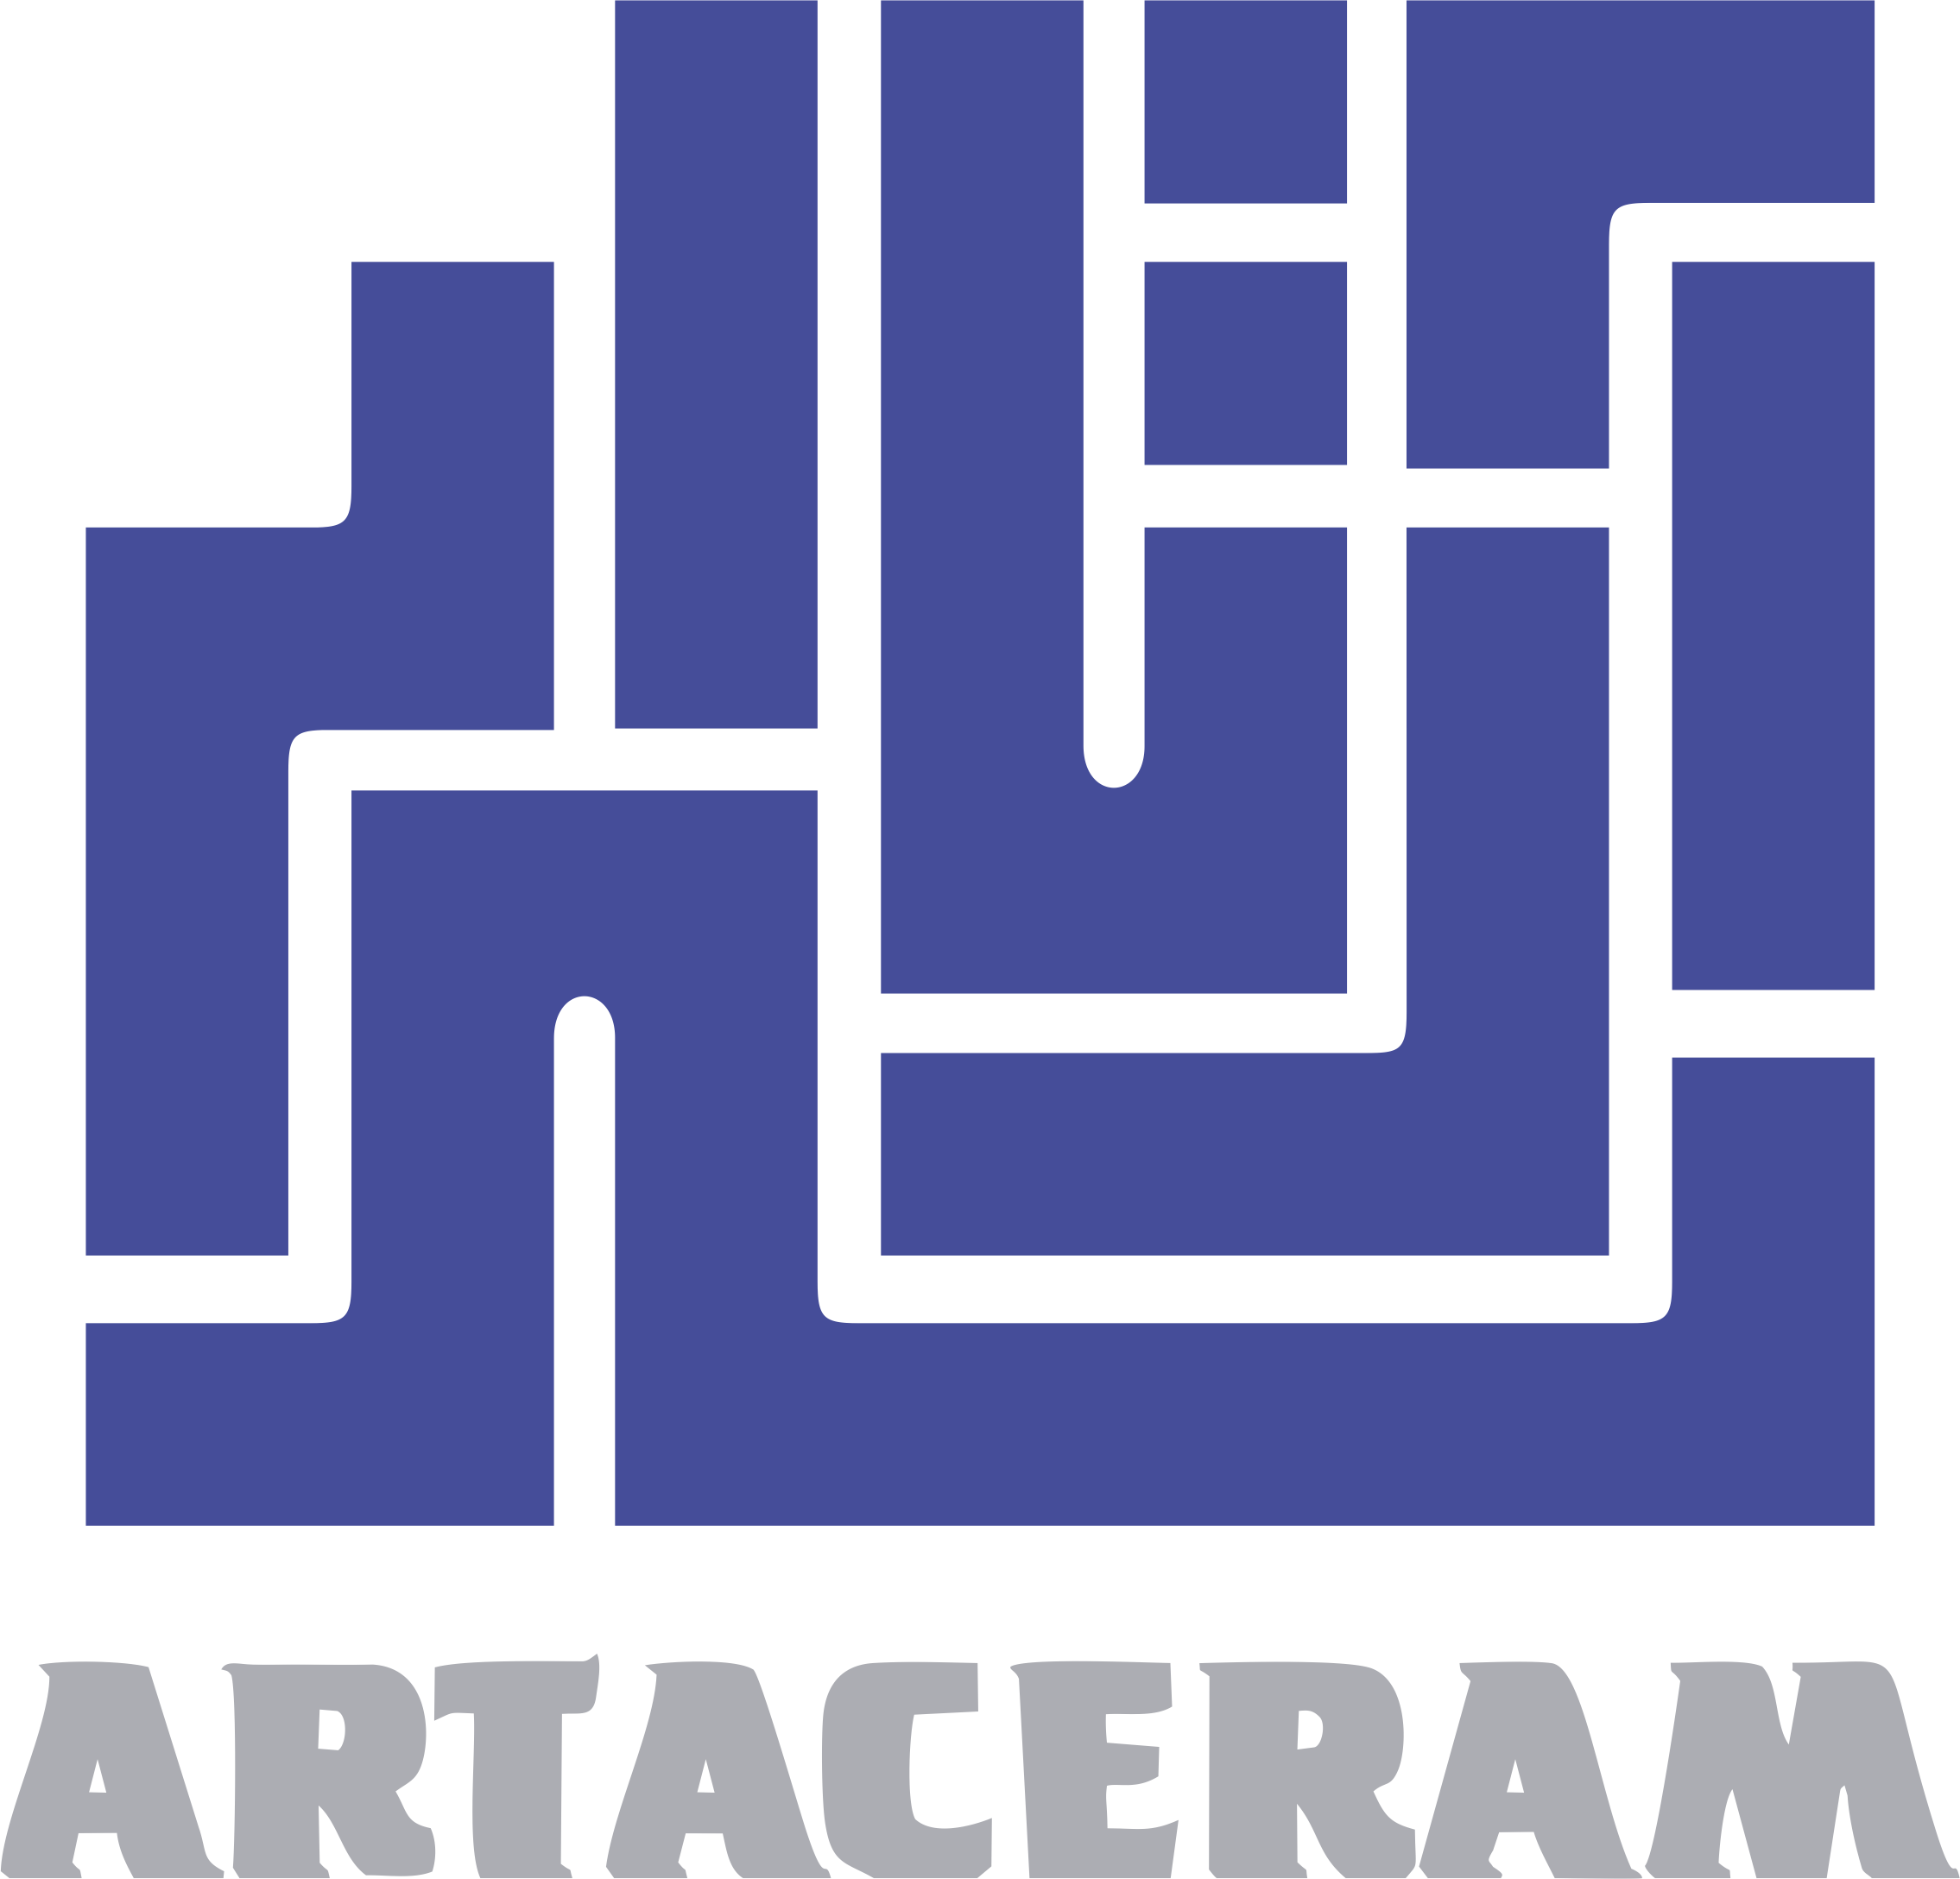 Artaceram; manufacturer of tiles and ceramics